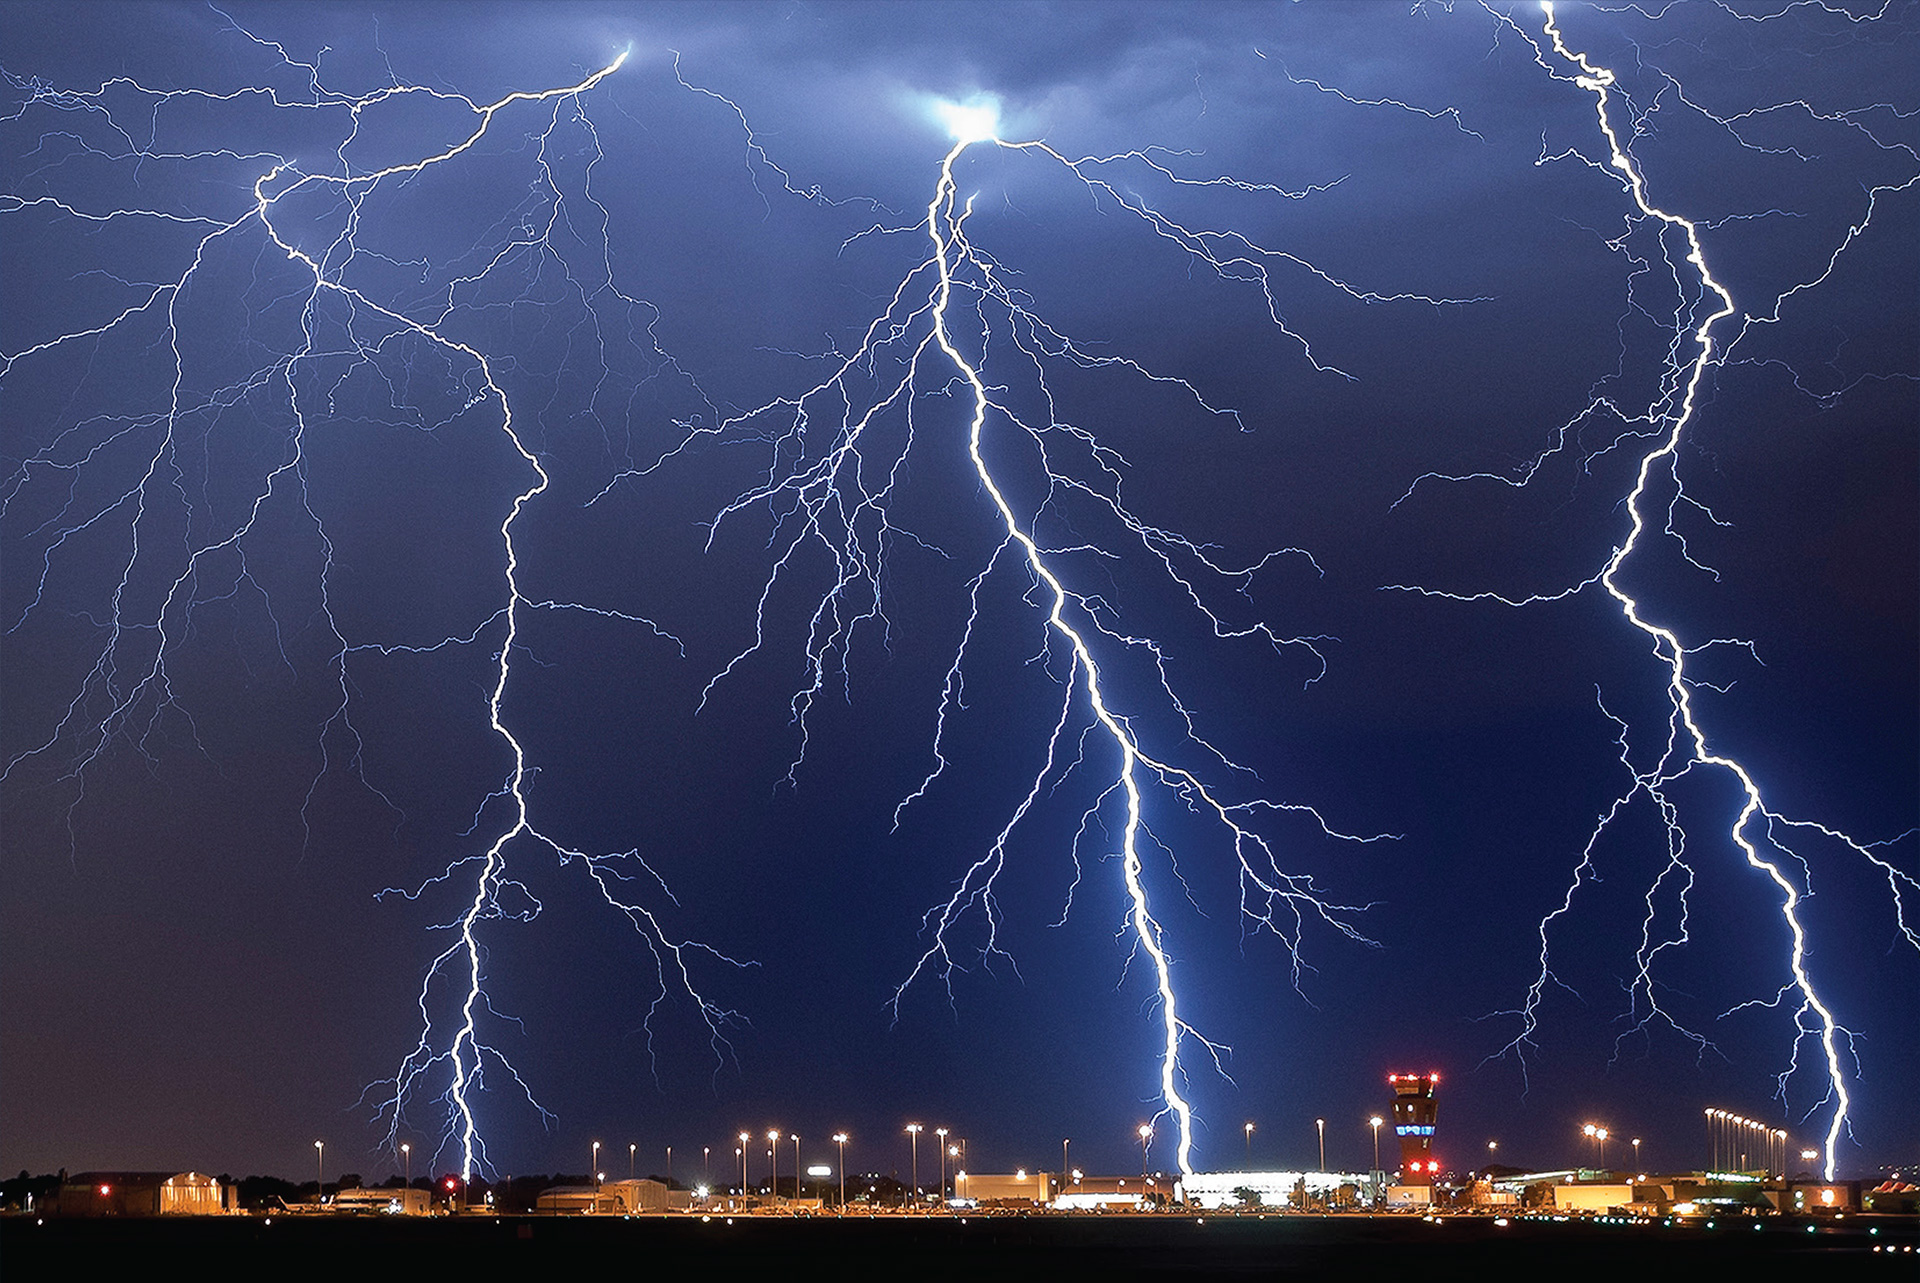 Three branching lightning strikes in a night sky over airport building and control tower